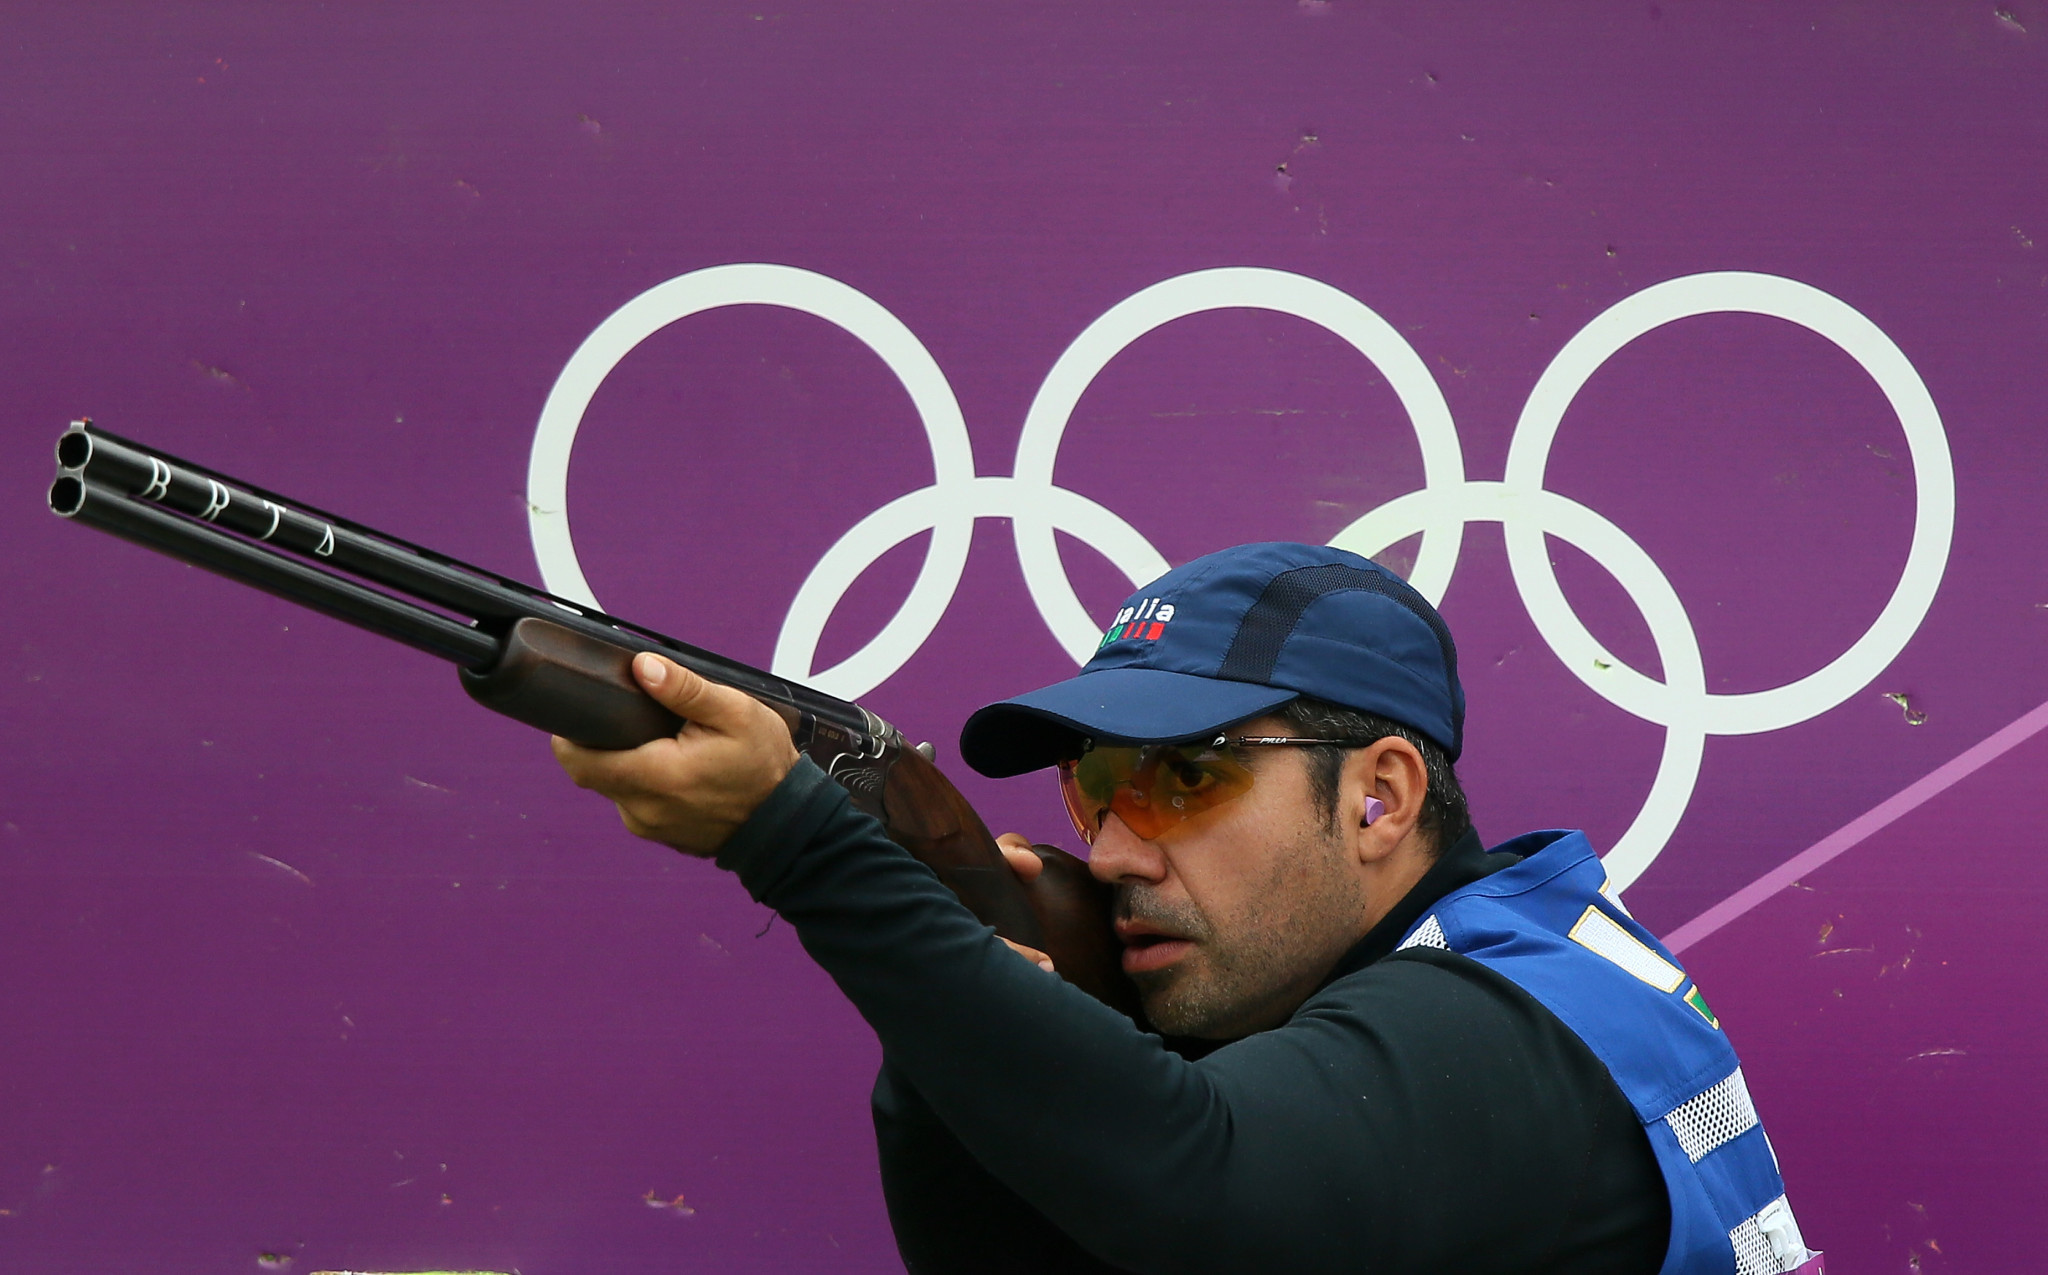 Italy's Lodde claims men's skeet title at ISSF Shotgun World Cup